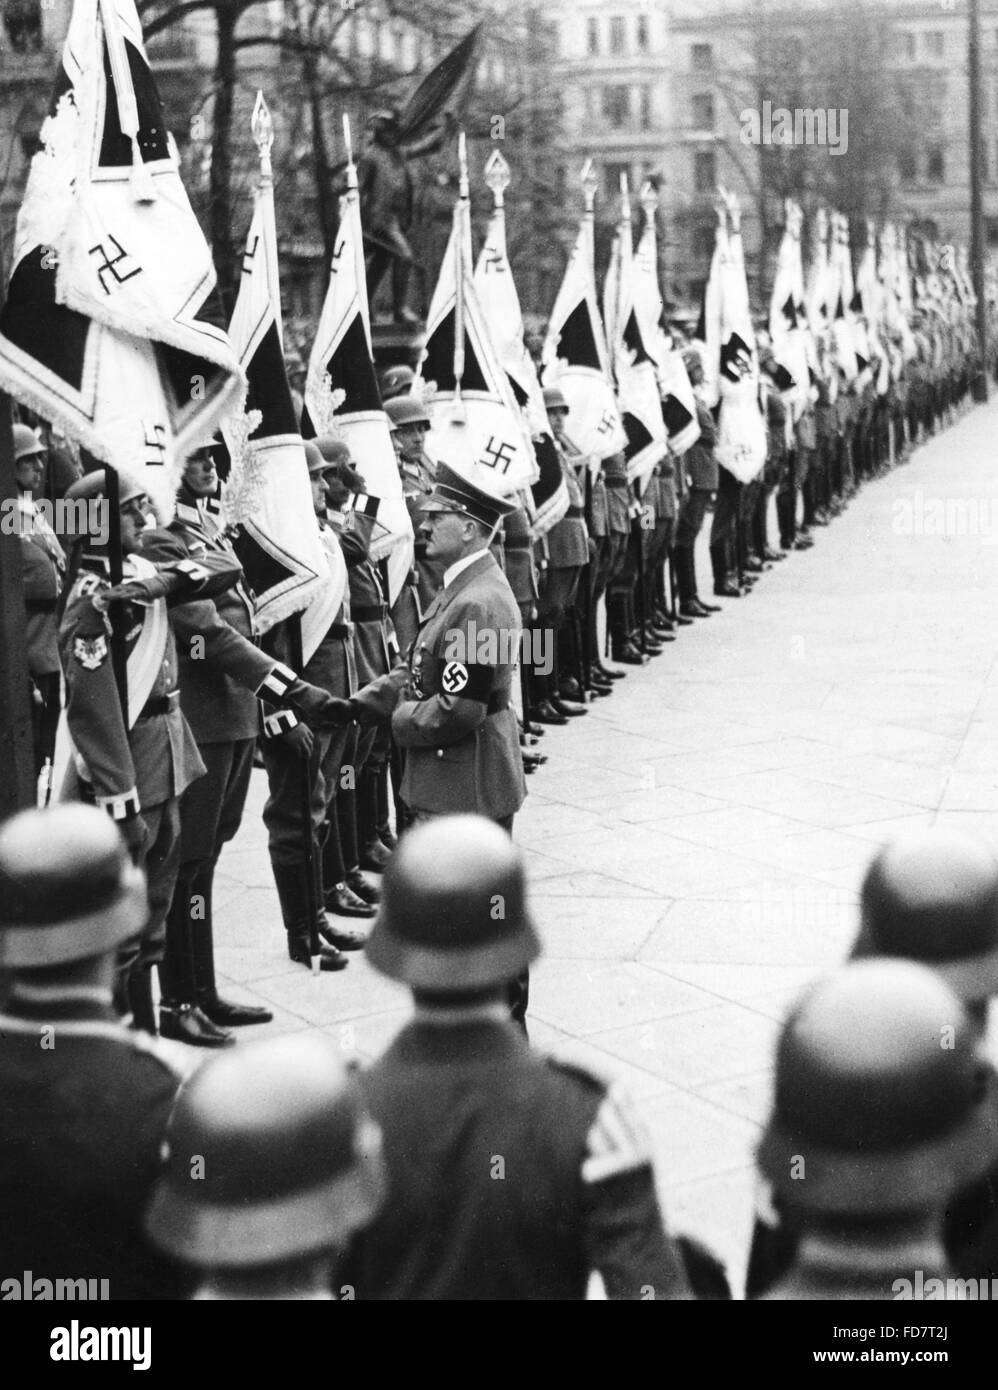 Handover of the new troops flags to the Wehrmacht, 1936 Stock Photo